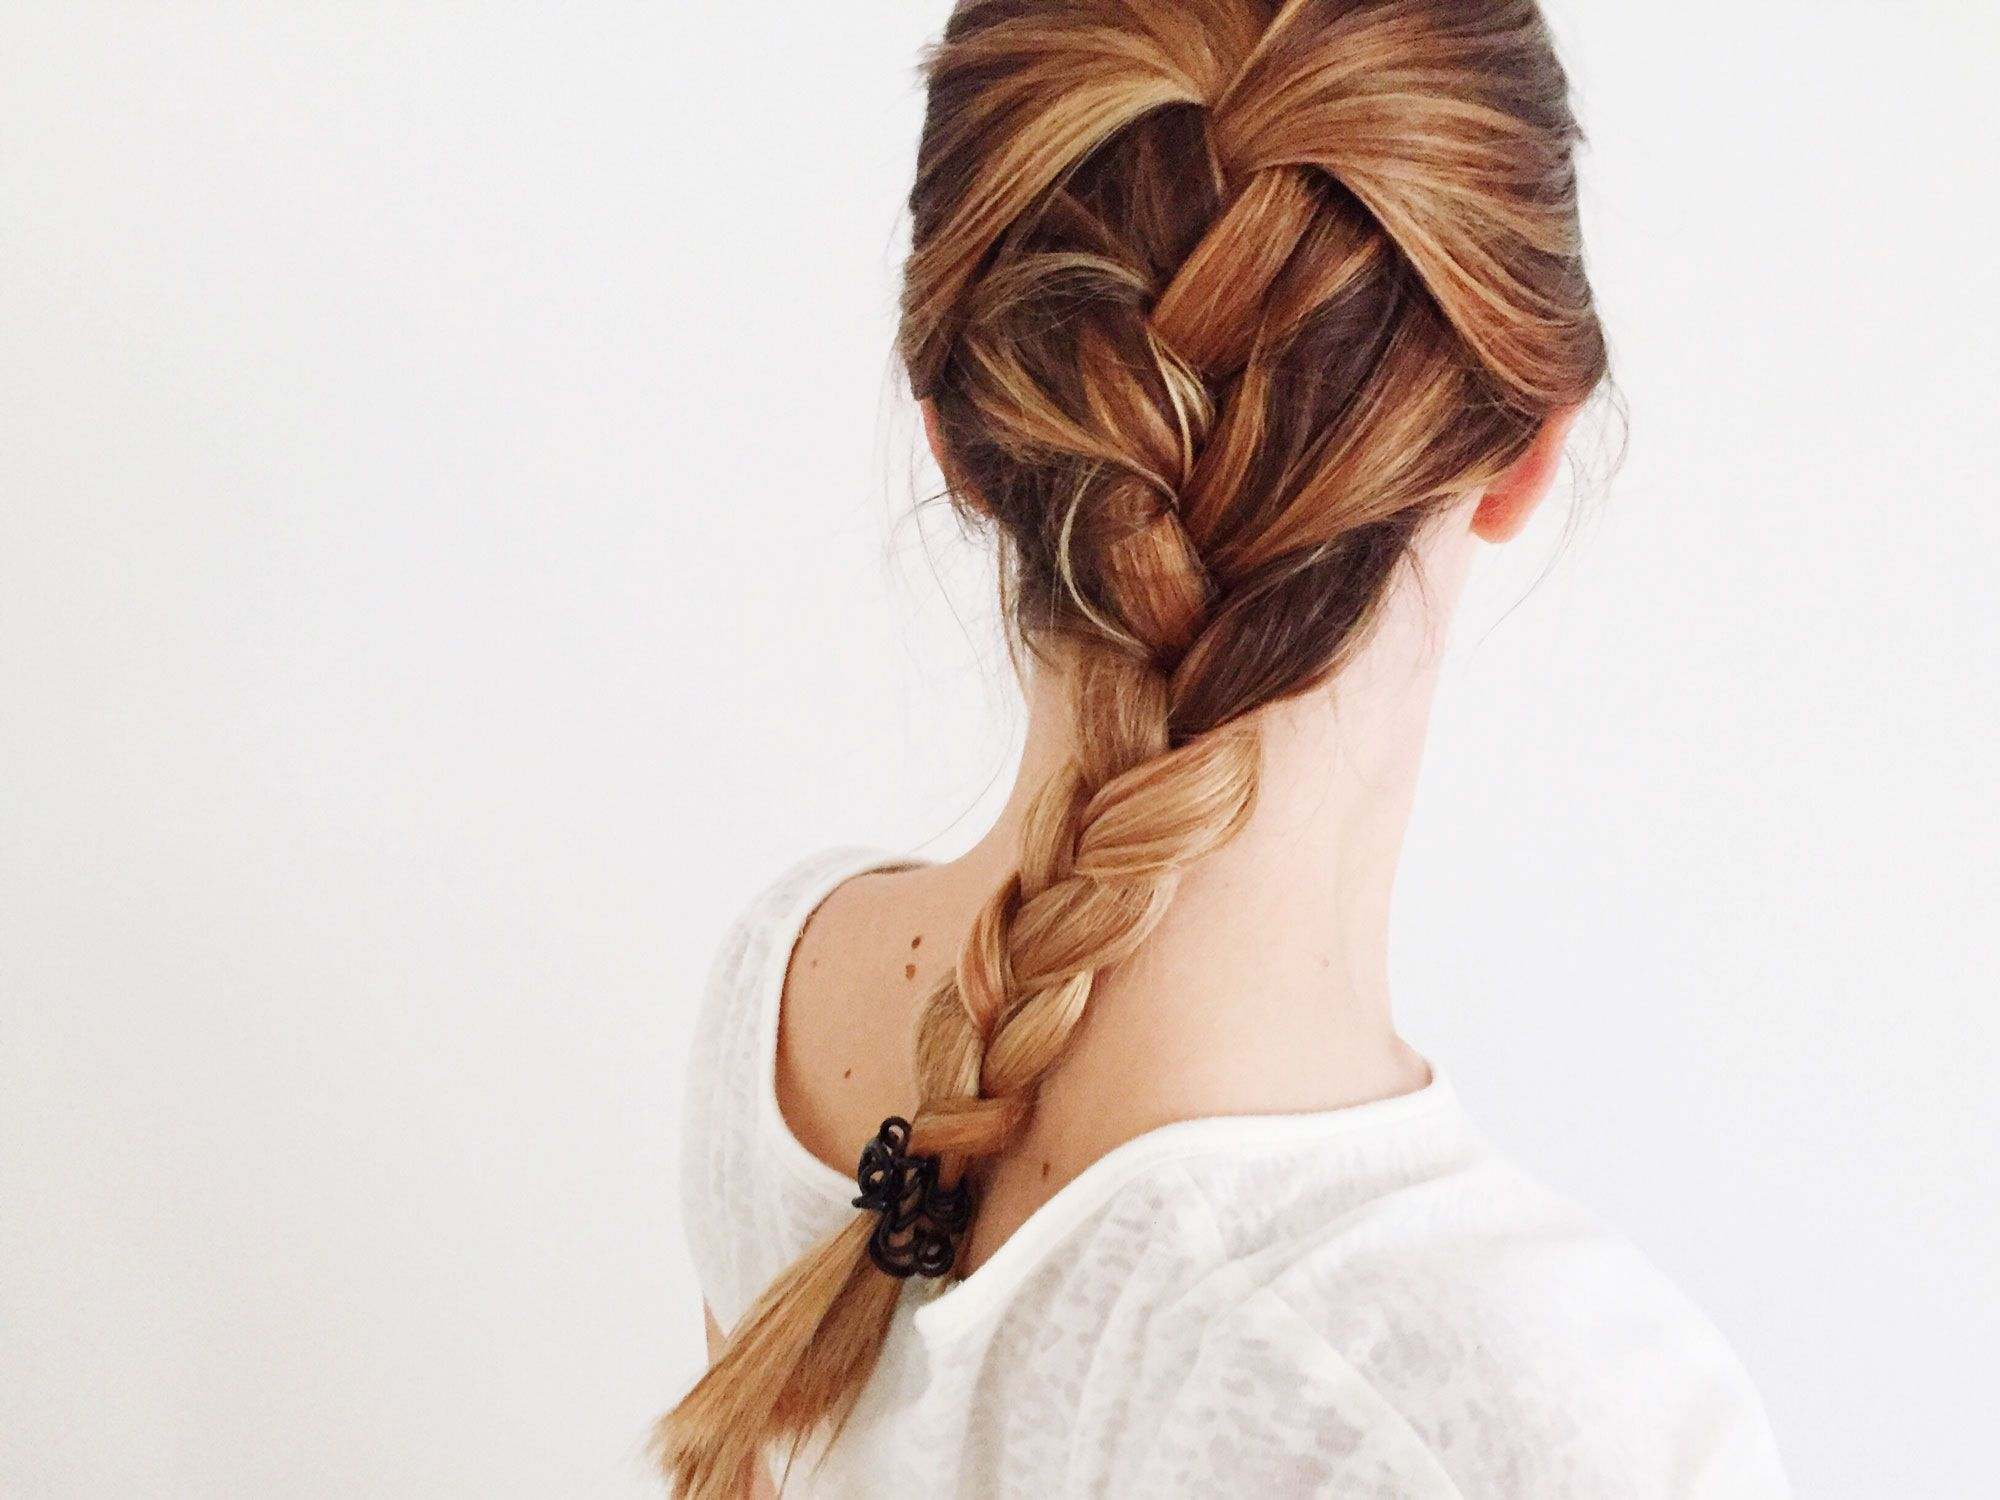 How To French Braid Your Own Hair Braiding Tutorial For Beginners